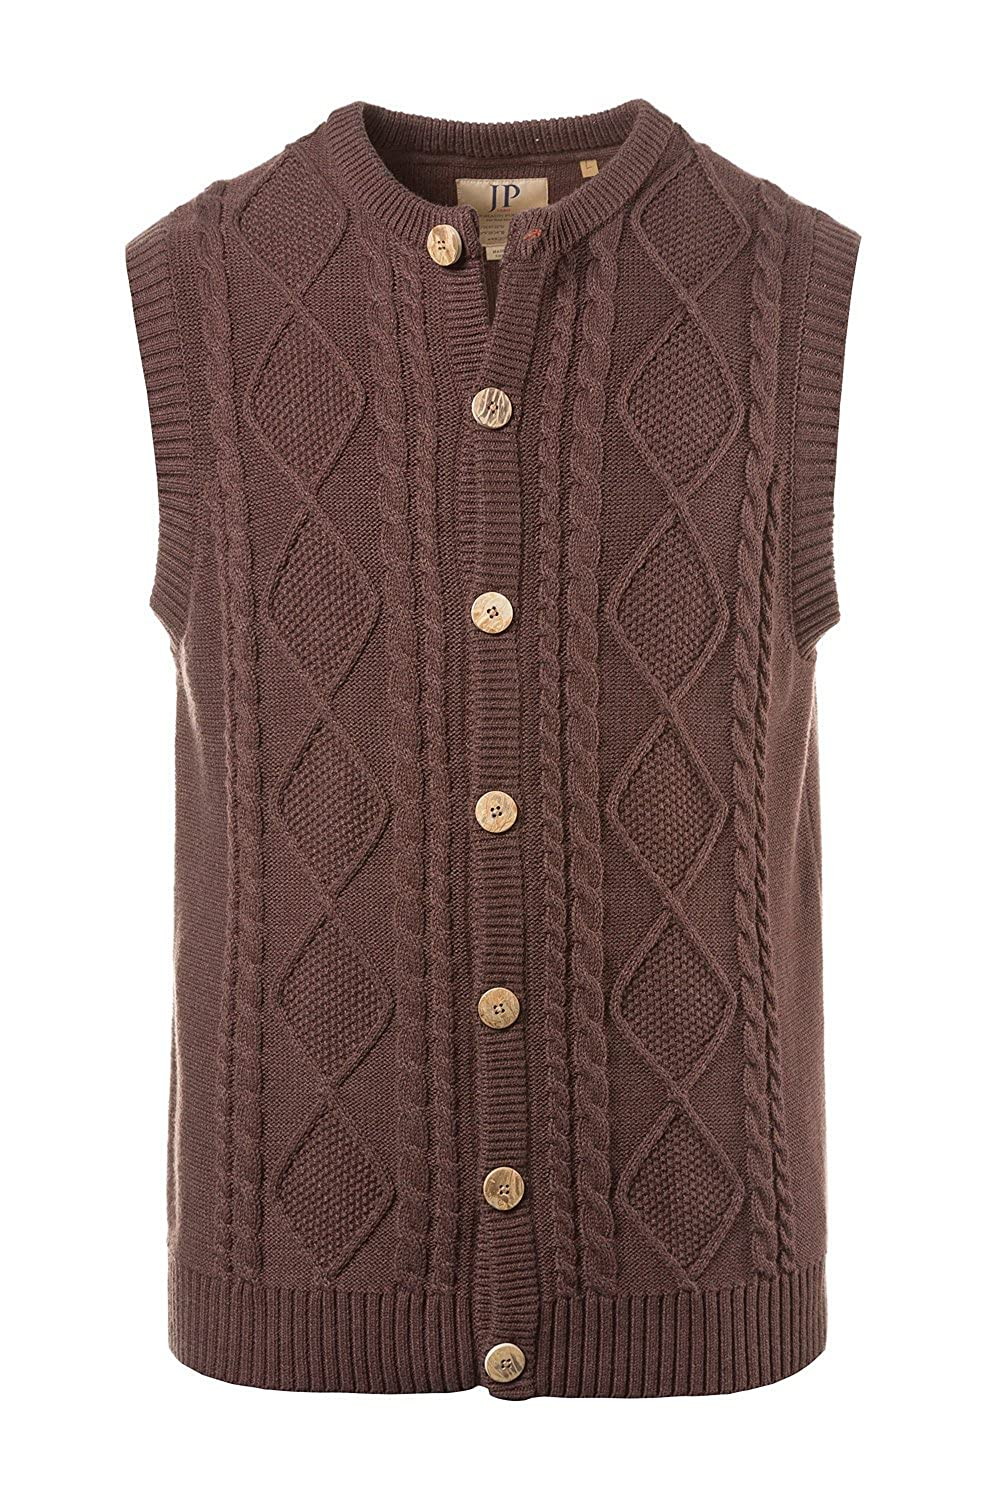 JP 1880 Men's Big & Tall Traditional Sweater Vest 705588